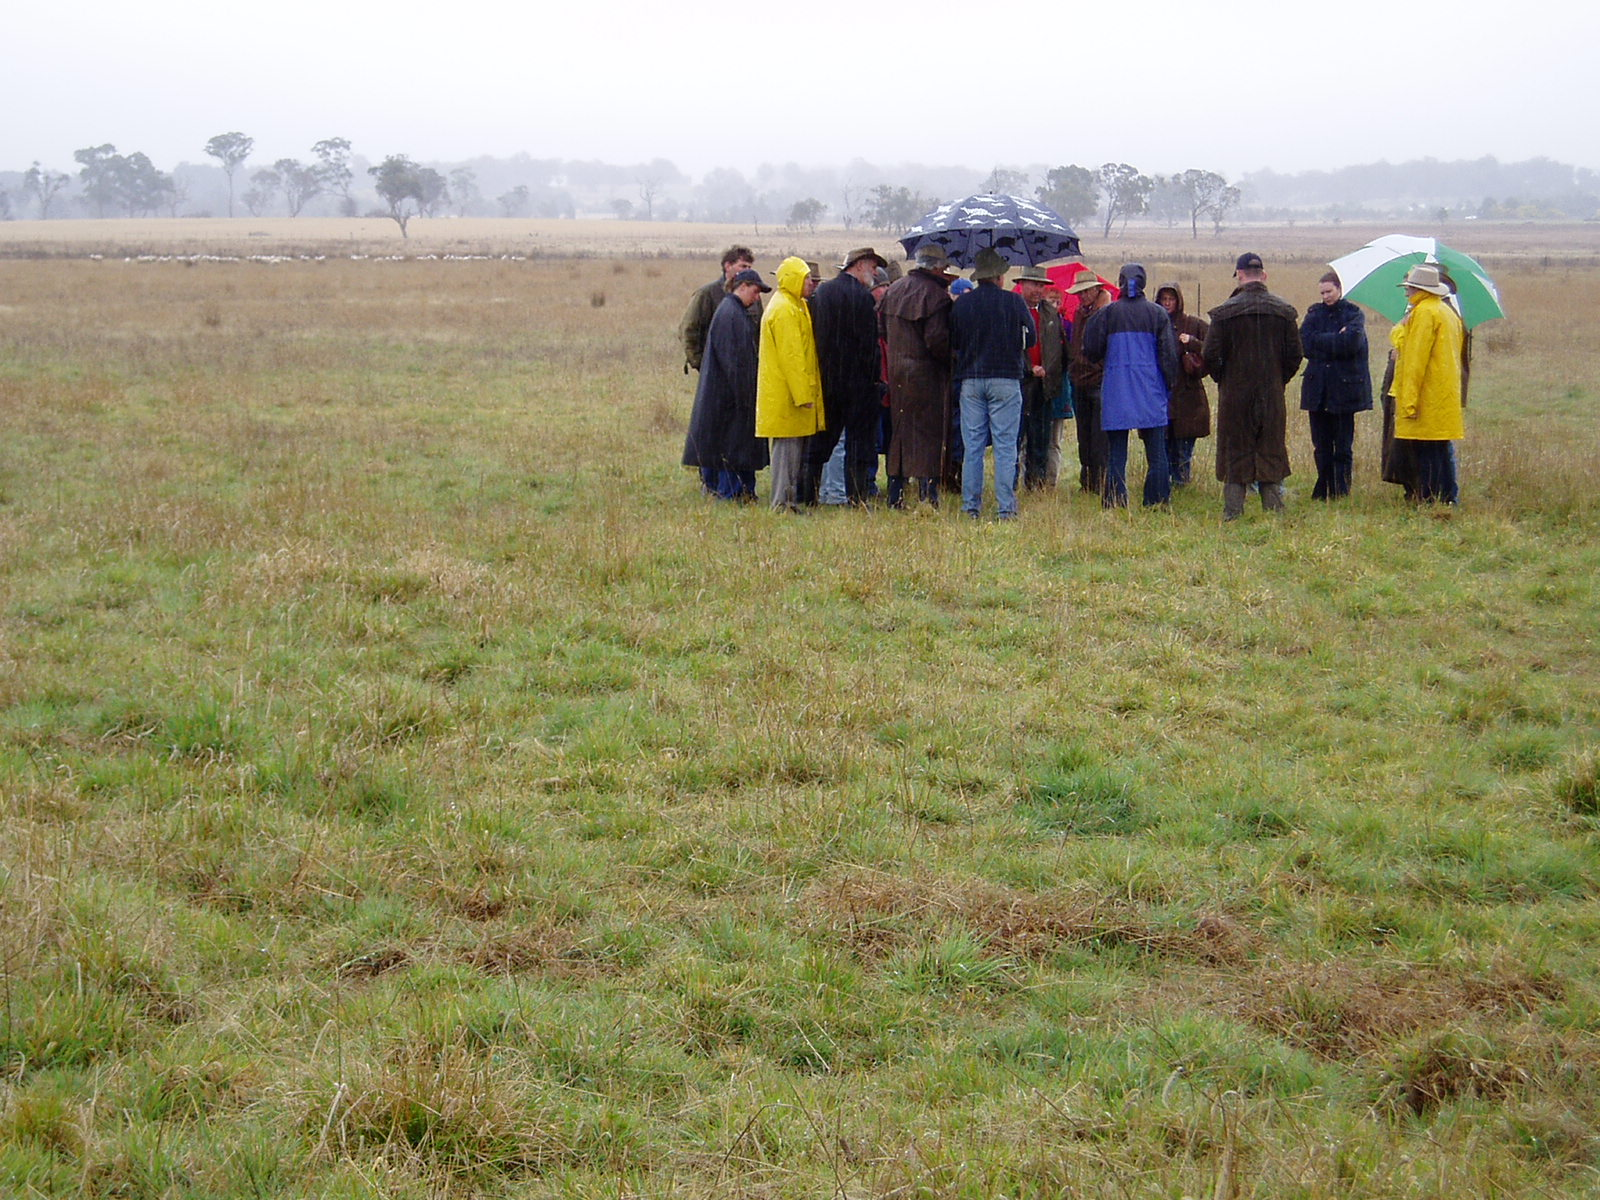 One of the 61 field days held - a rare wet one during the extended dry period experienced over the trial's duration